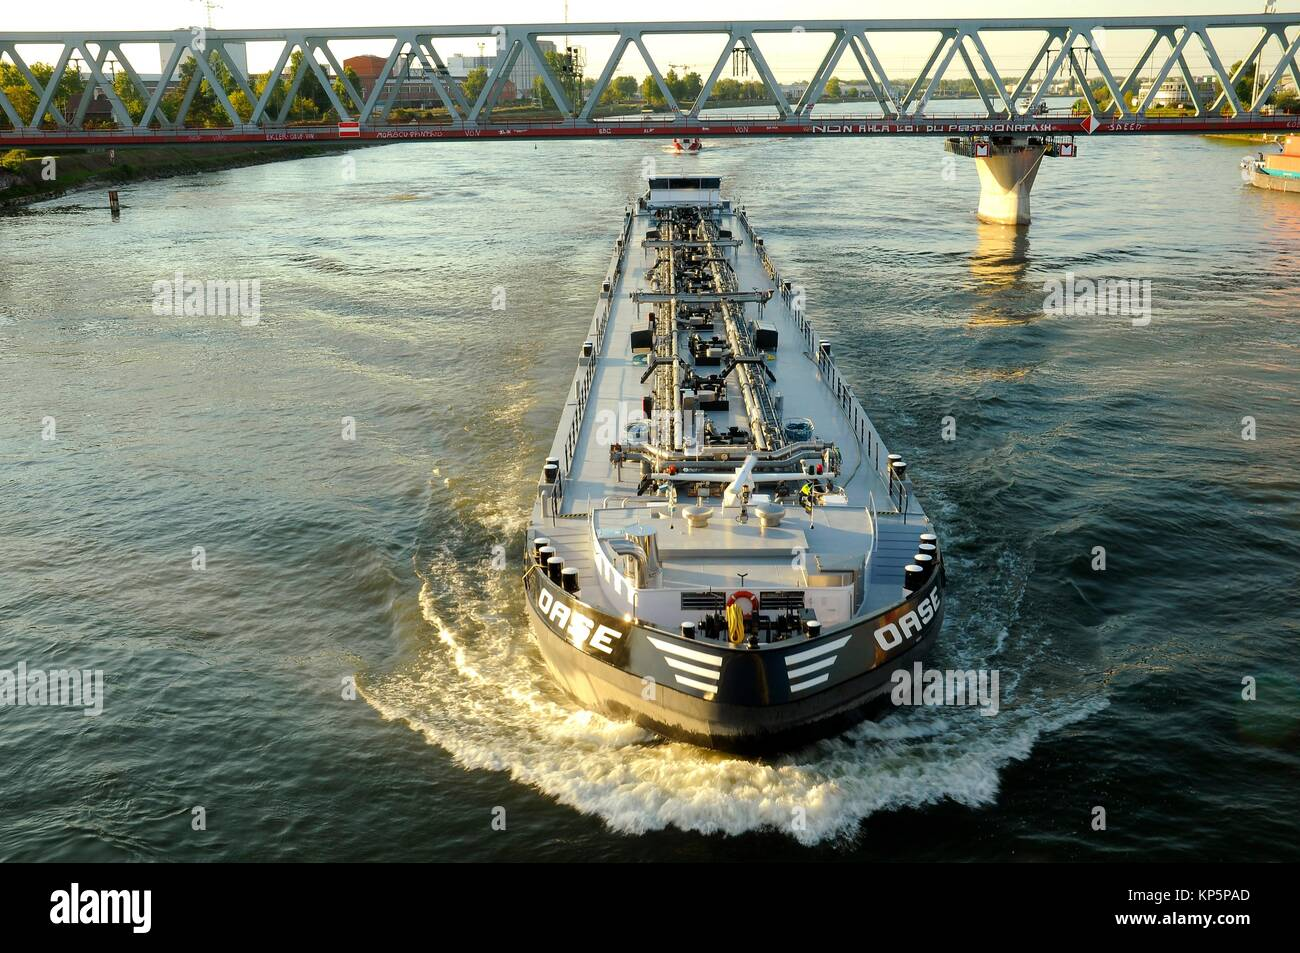 Nautical Vessel navigate on the Rhein river between Germany and France - Stock Image